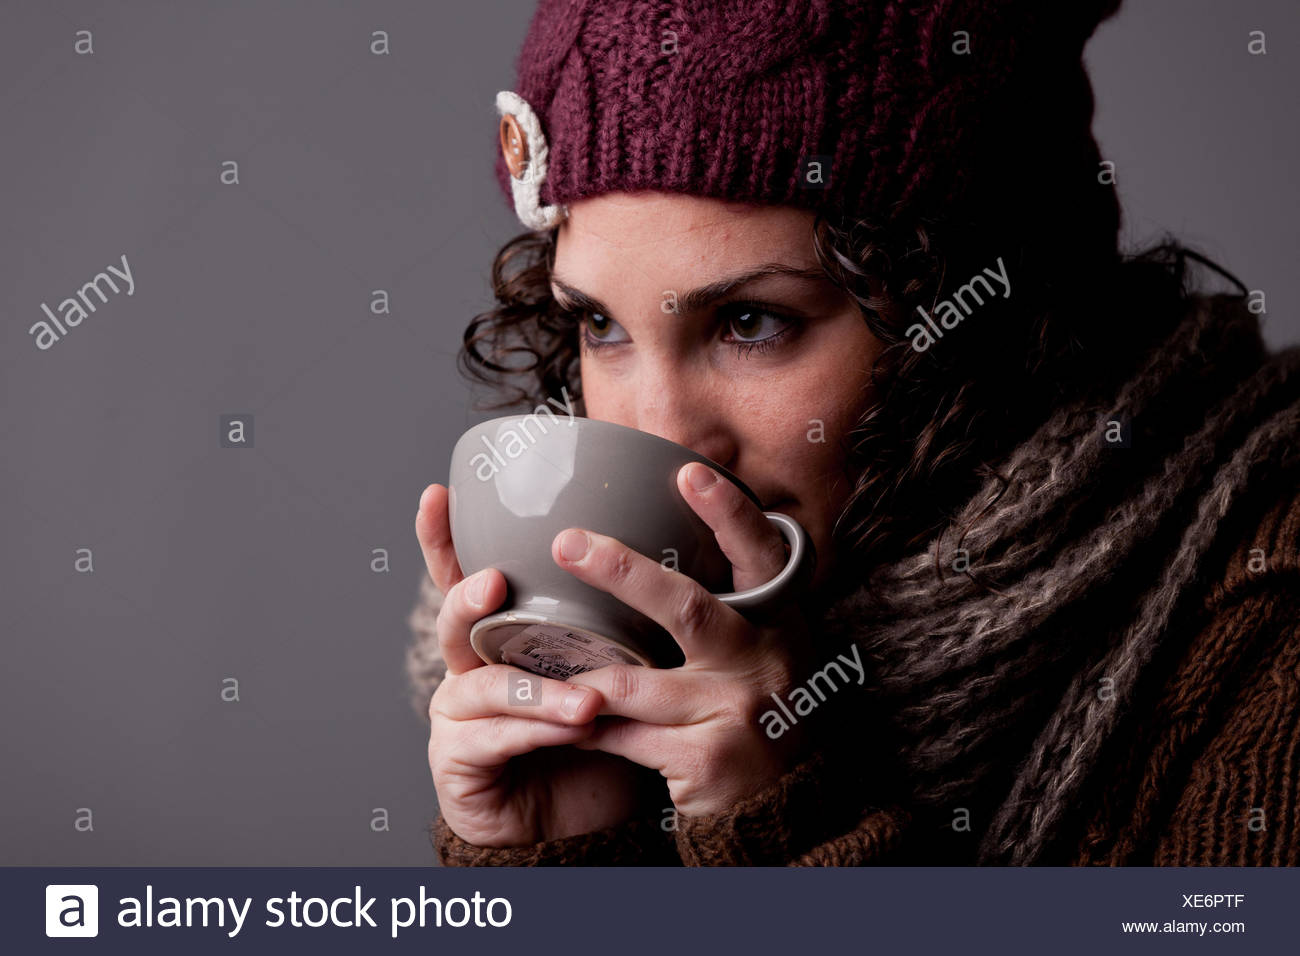 15058a3e77f it s winter and this girl with wool hat and scarf drinks a hot chocolate or  hot tea or milk from a big mug and she s happy